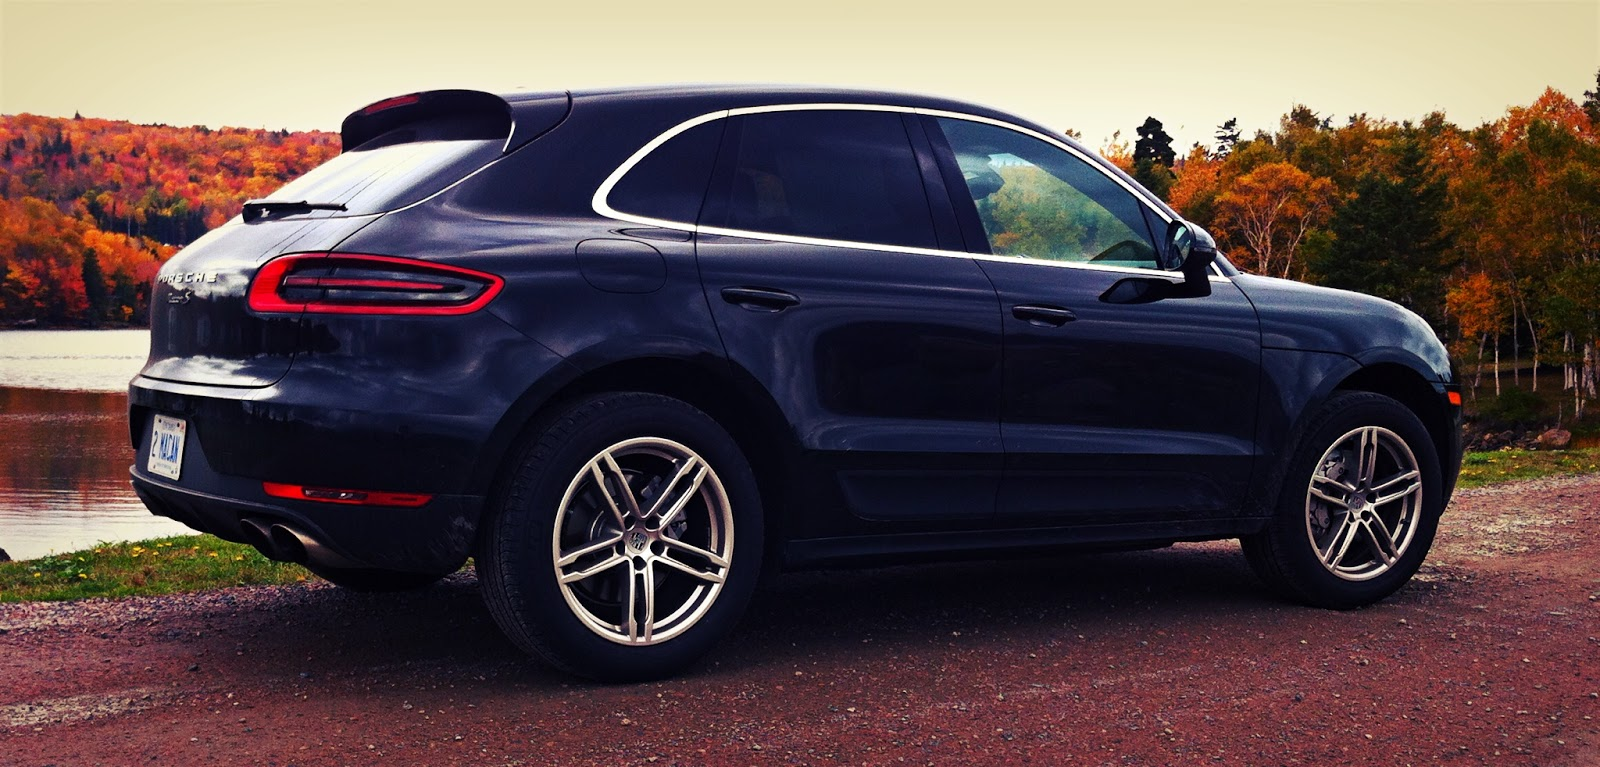 2015 porsche macan s review drive it don 39 t load it good car bad car. Black Bedroom Furniture Sets. Home Design Ideas